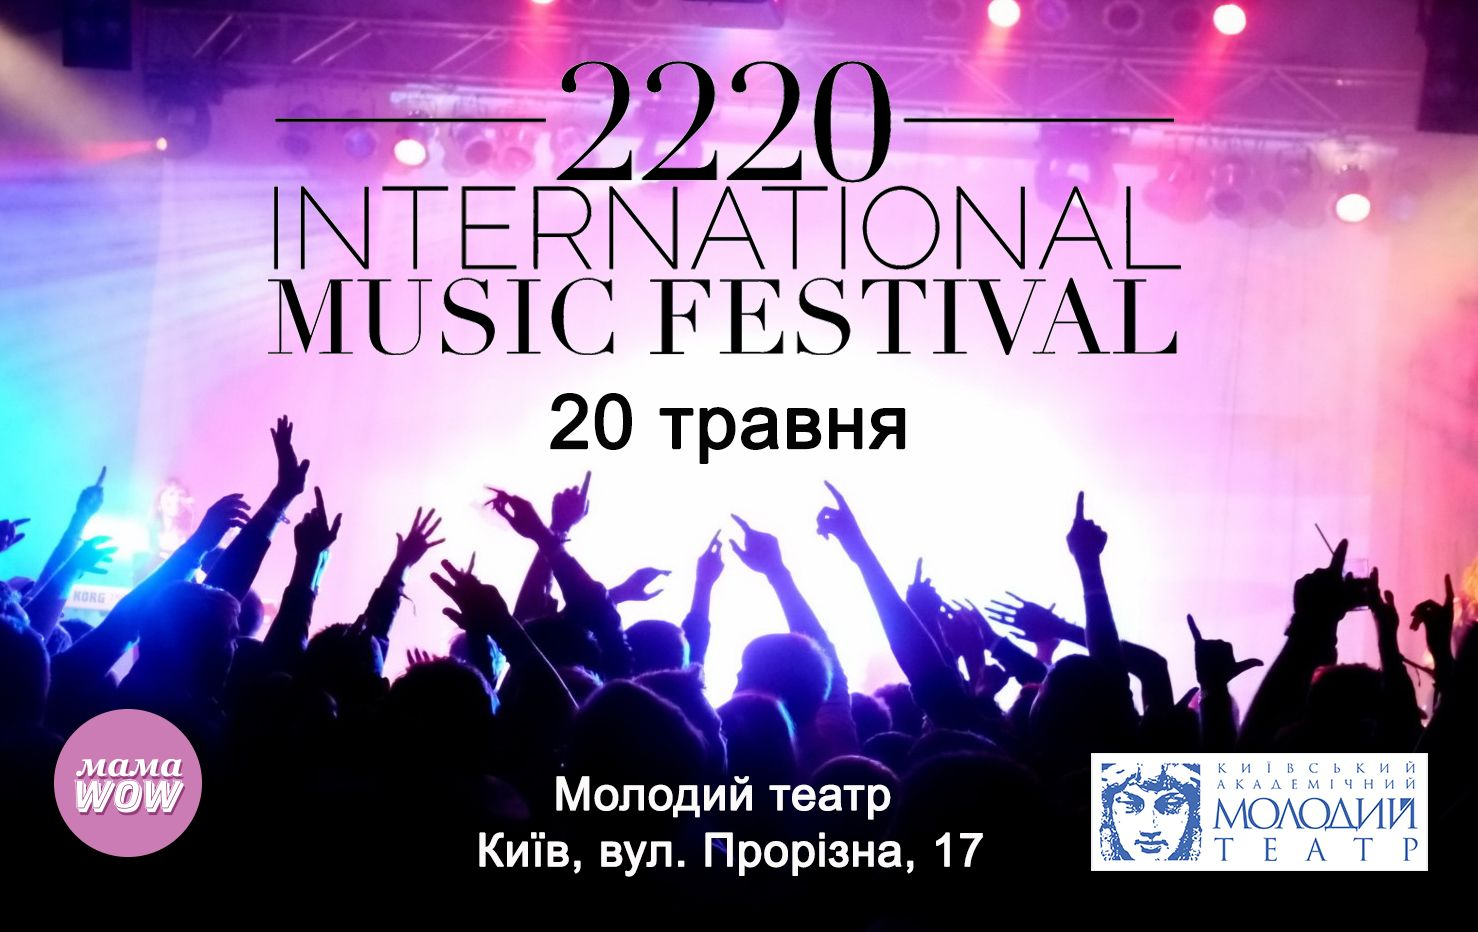 Вокальний конкурс 2220 International Music Festival